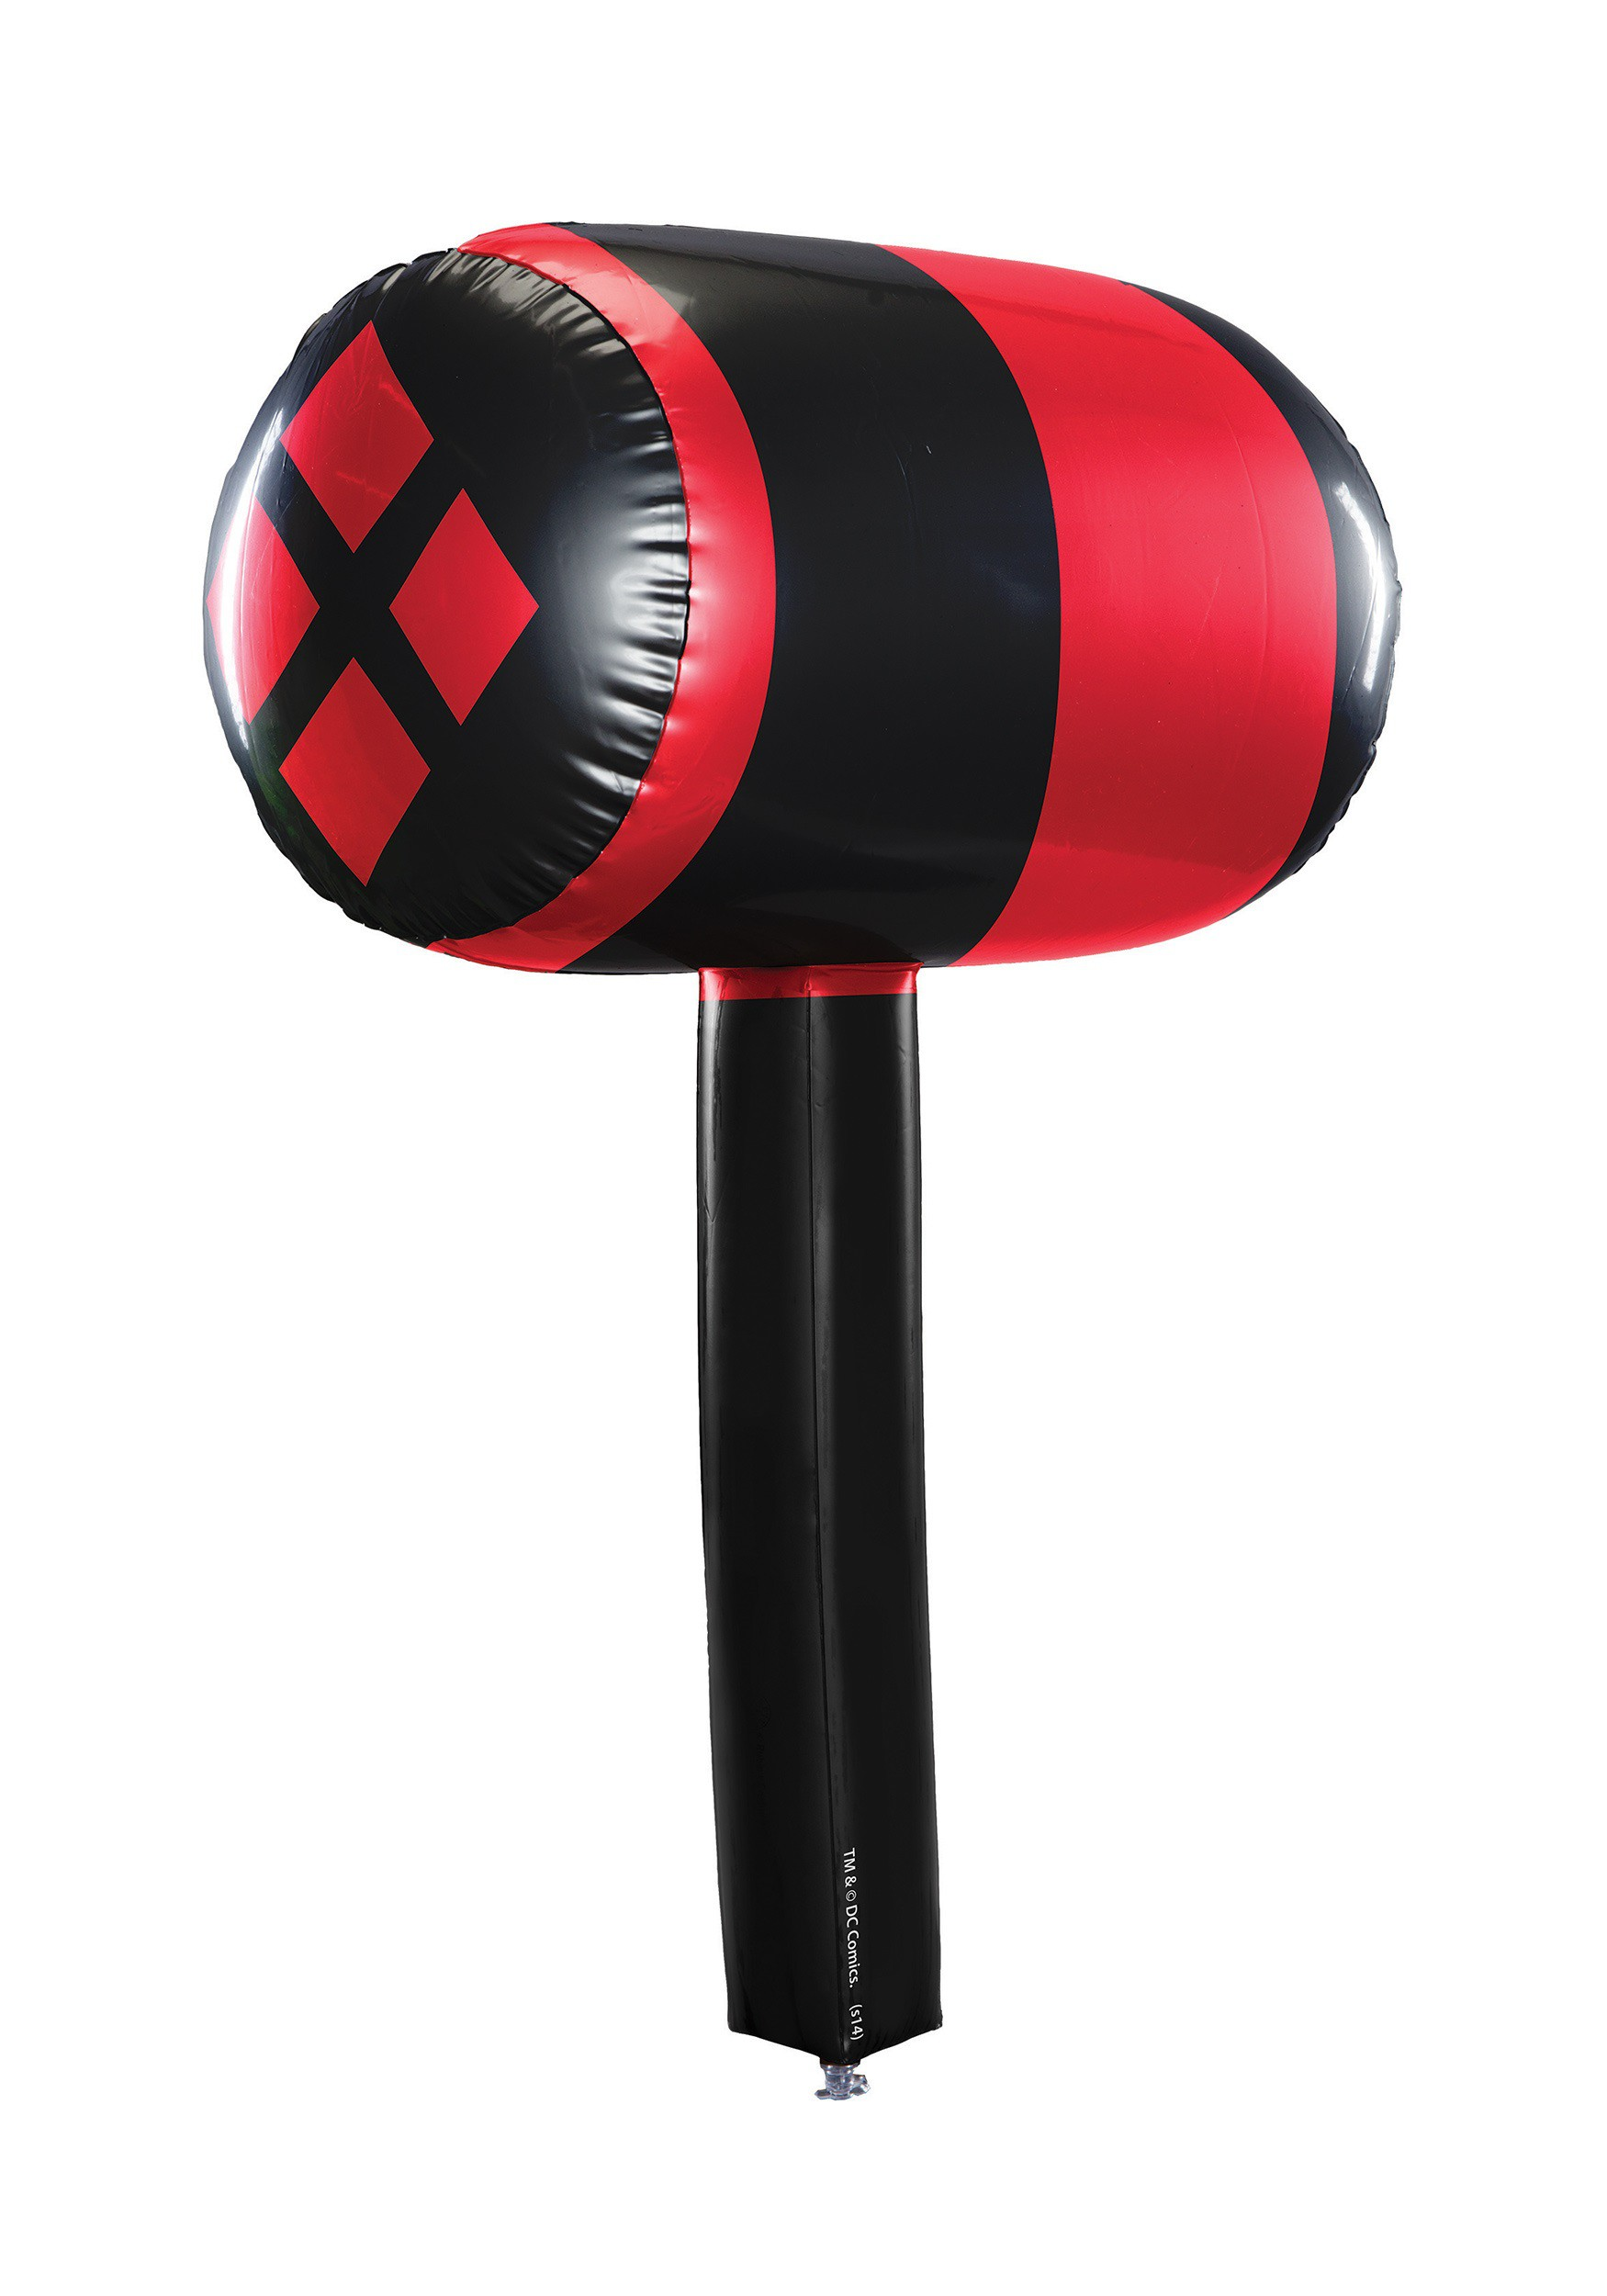 Harley quinn inflatable mallet